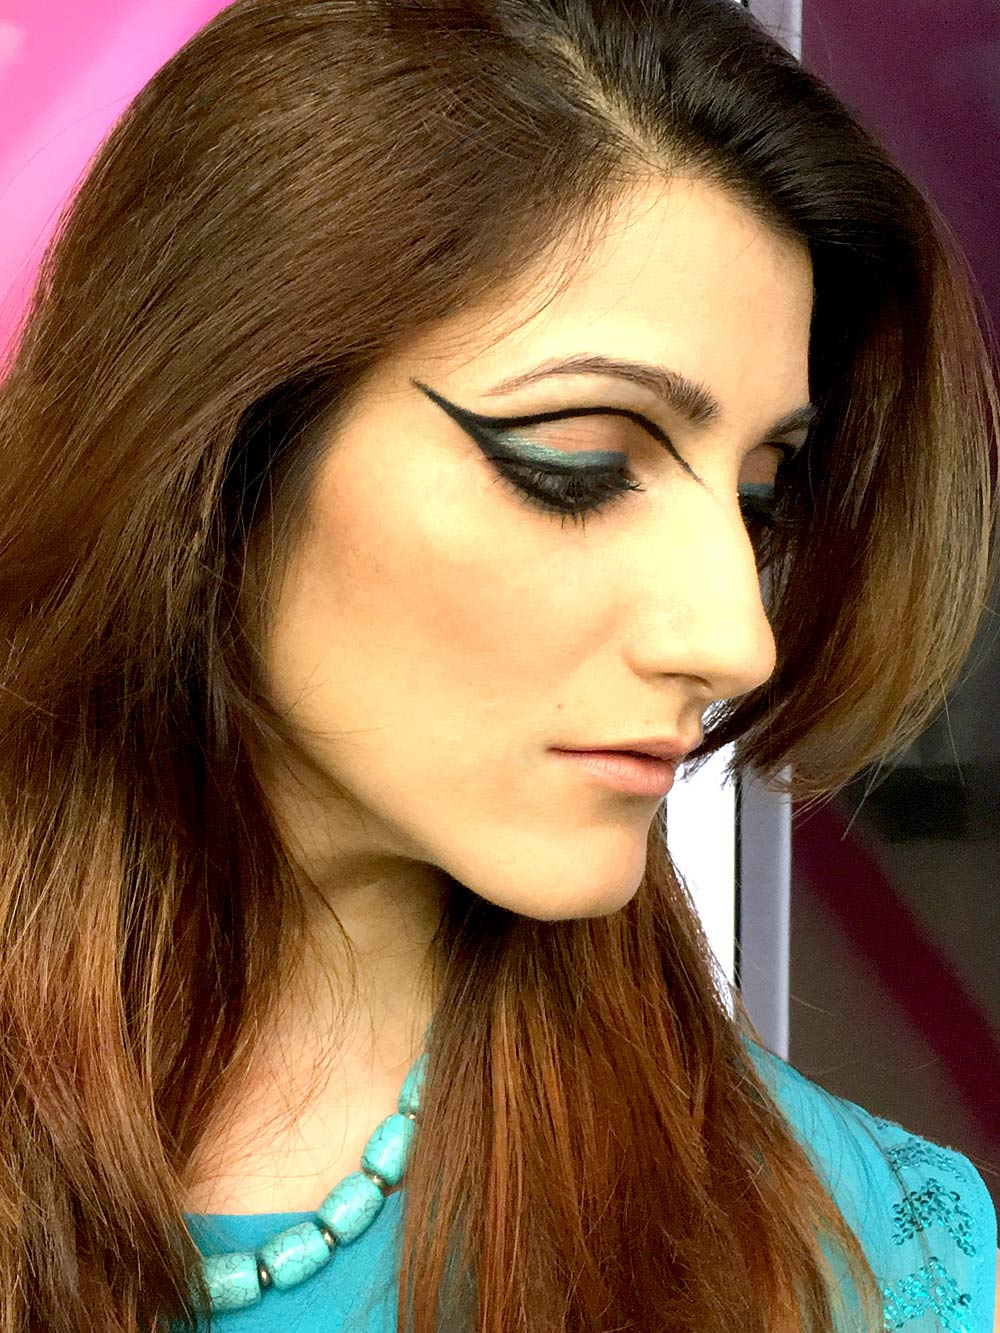 shilpa-ahuja-mac-collab-eye-makeup-extended-wing-eyeliner-black-twist-kajal-fashion-blogger